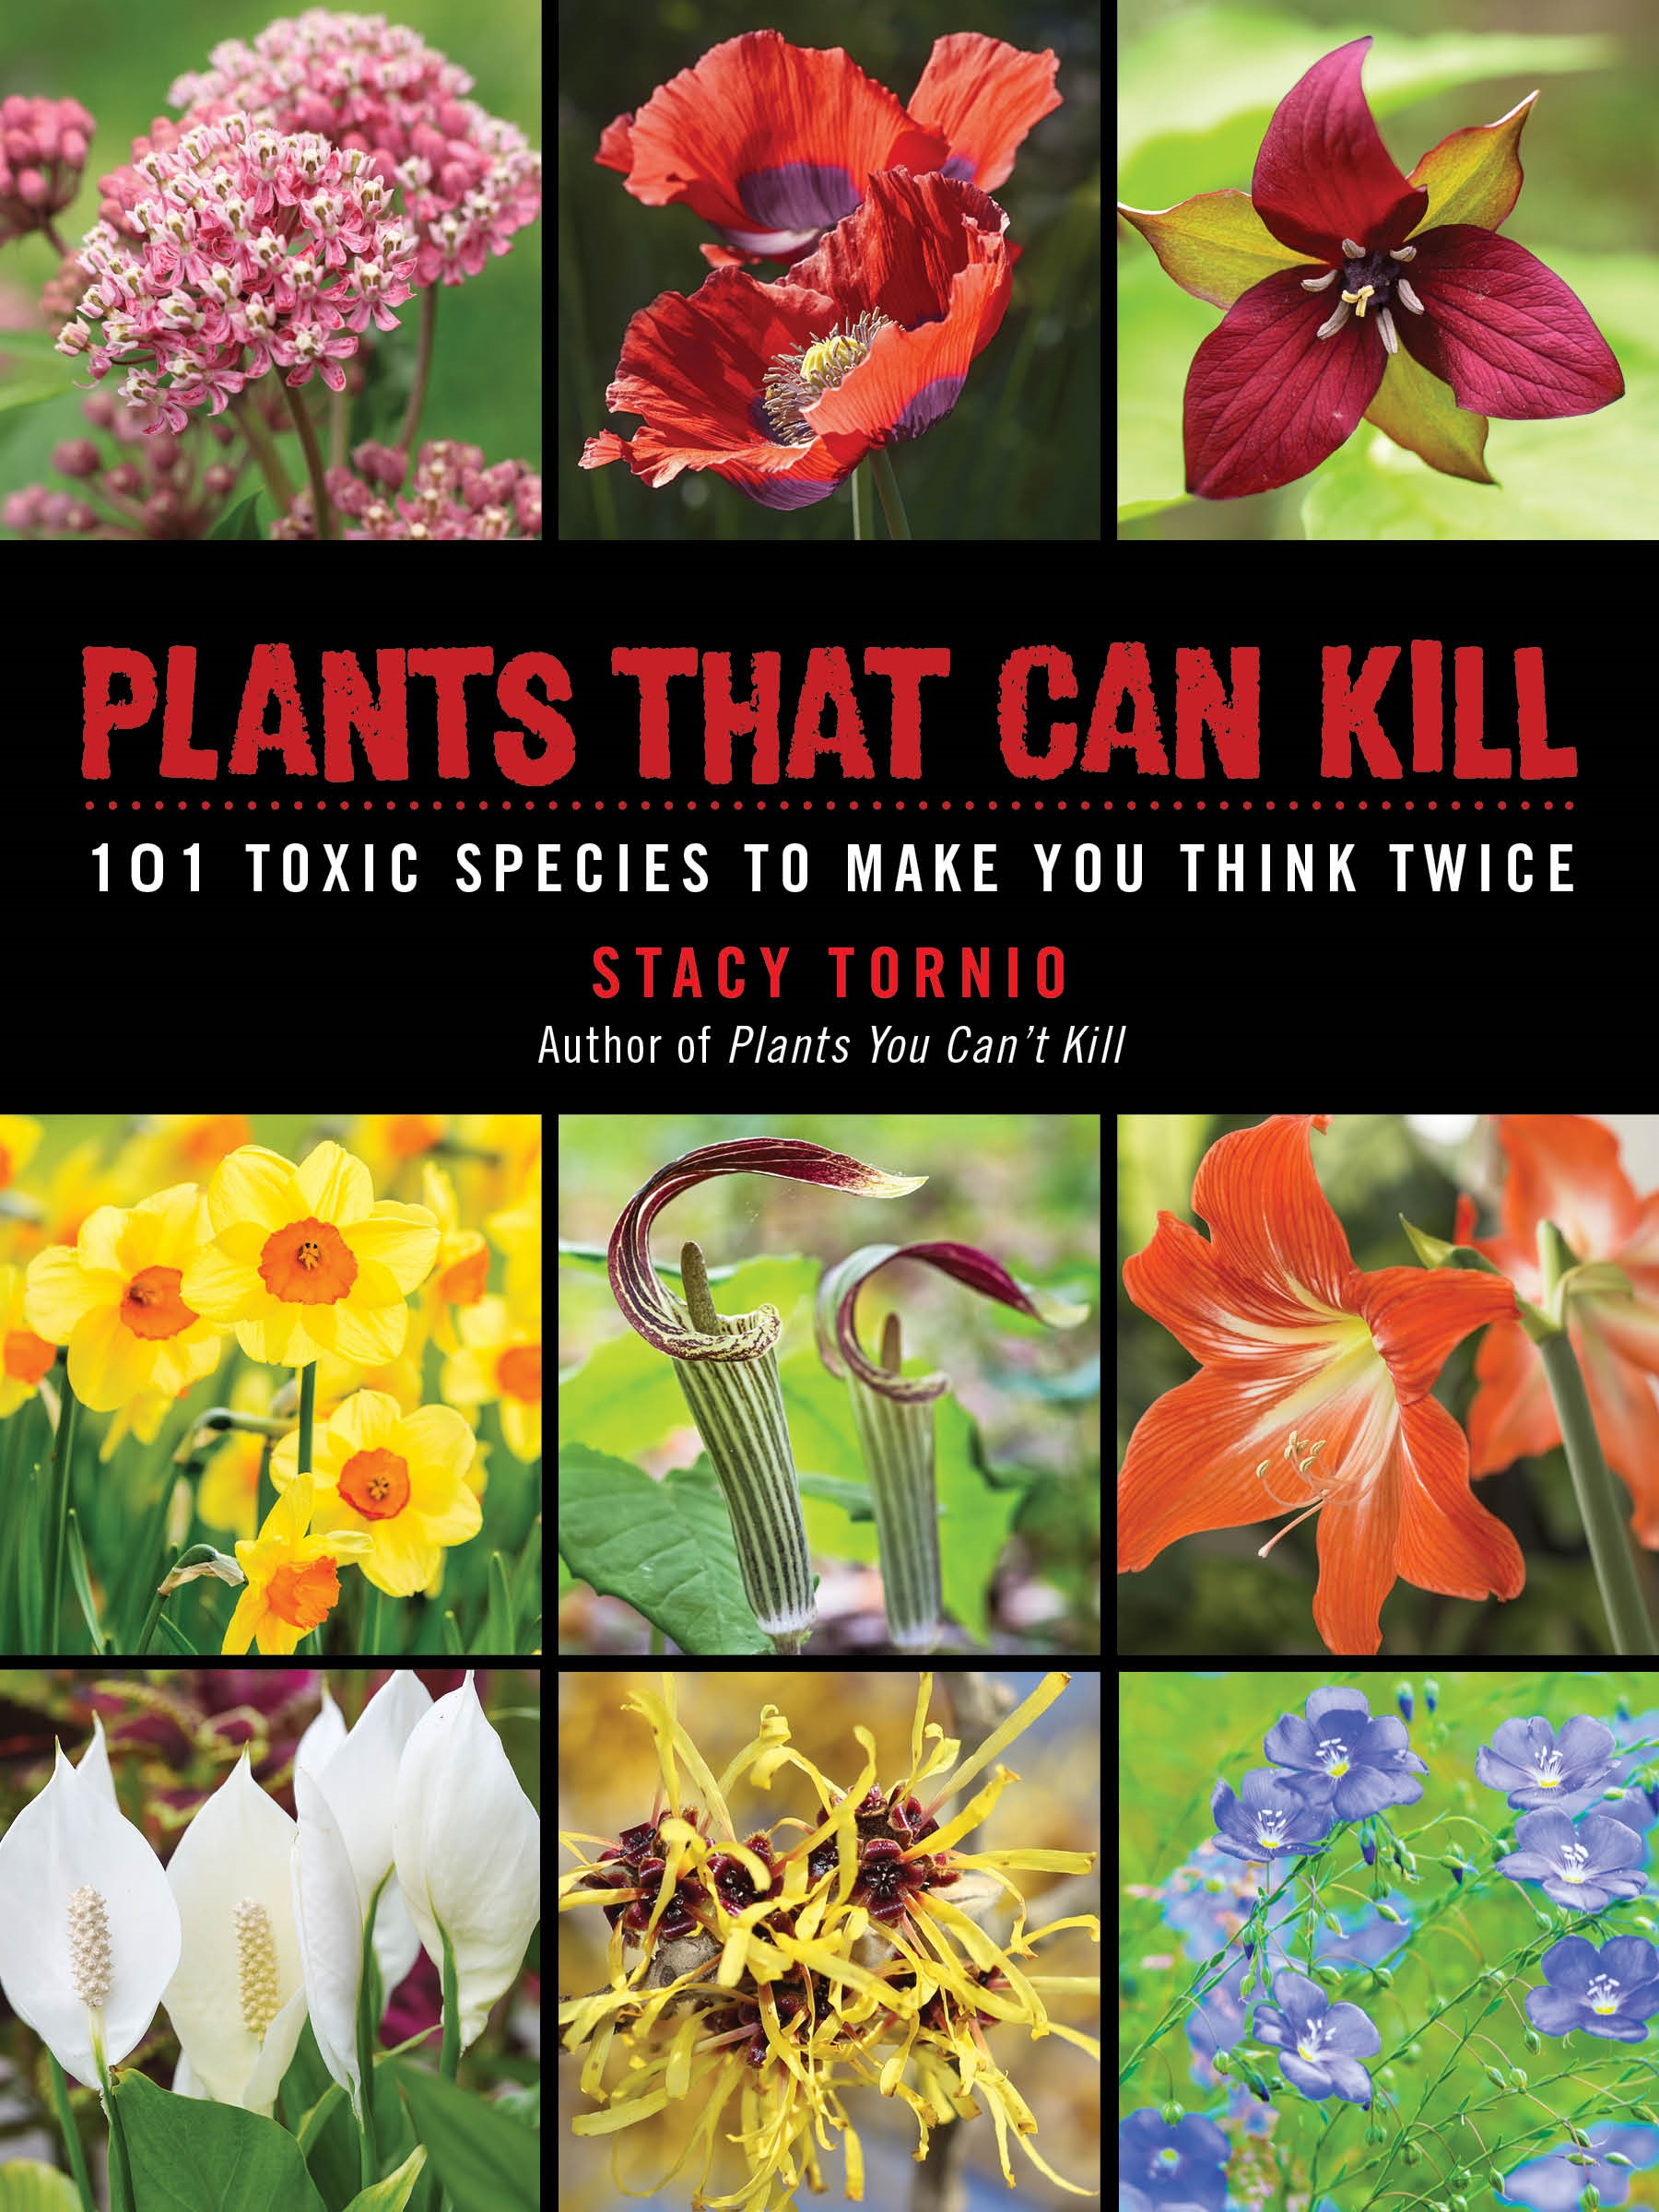 Plants That Can Kill_9781510726789.jpg